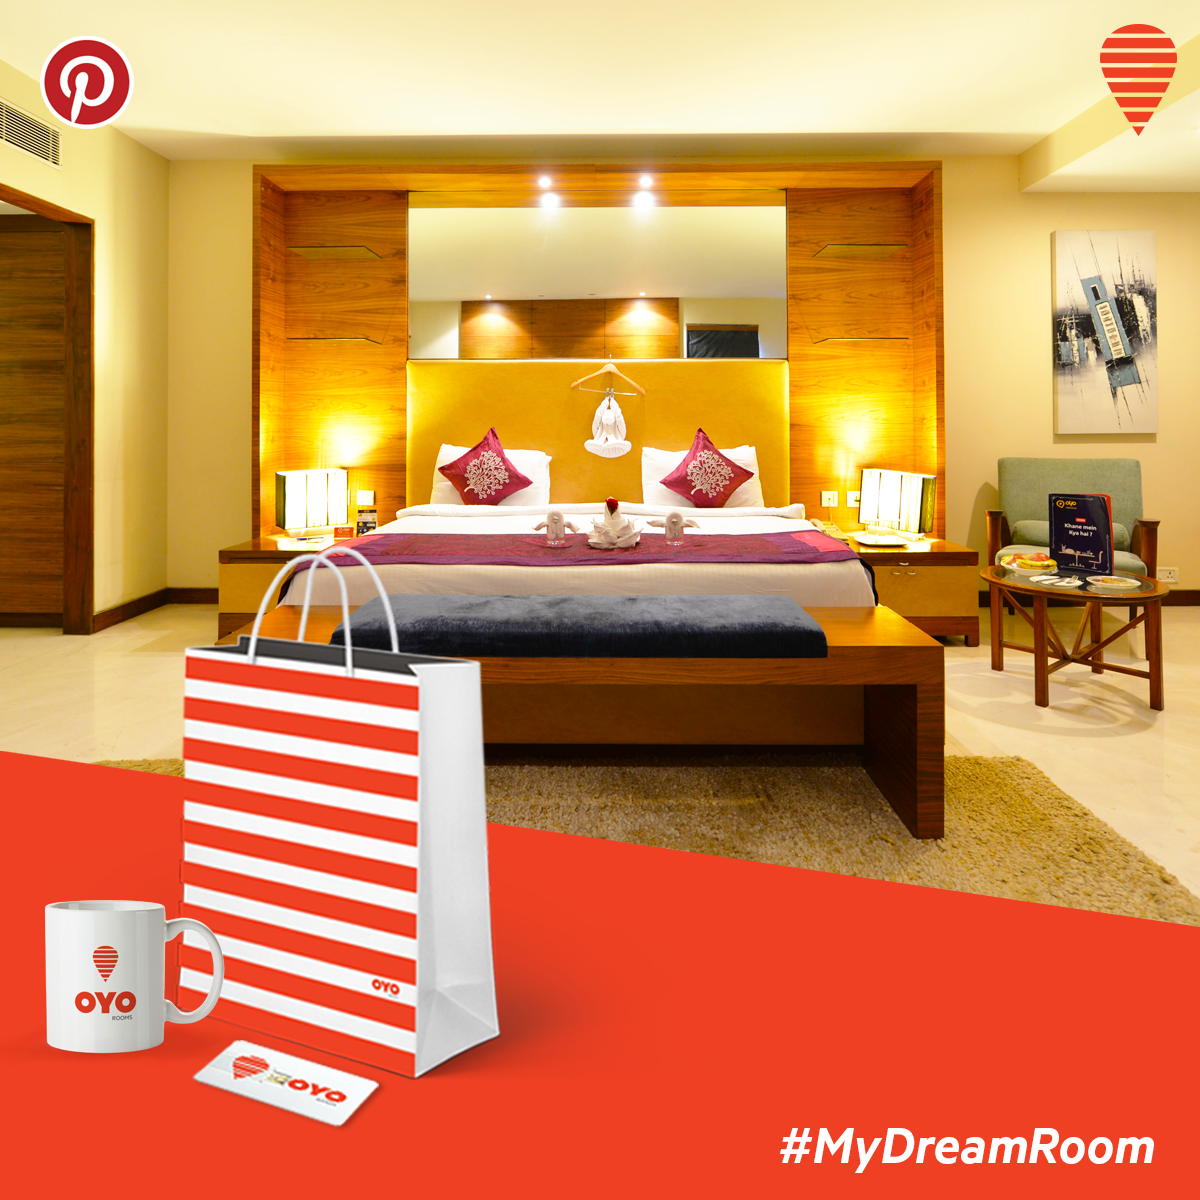 An Exciting Opportunity To Win Oyo Goodies Participate In Our Interesting Campaign Mydreamroom By Sharing Your Ideas Of A Perfect Oyoro Dream Room Home Room